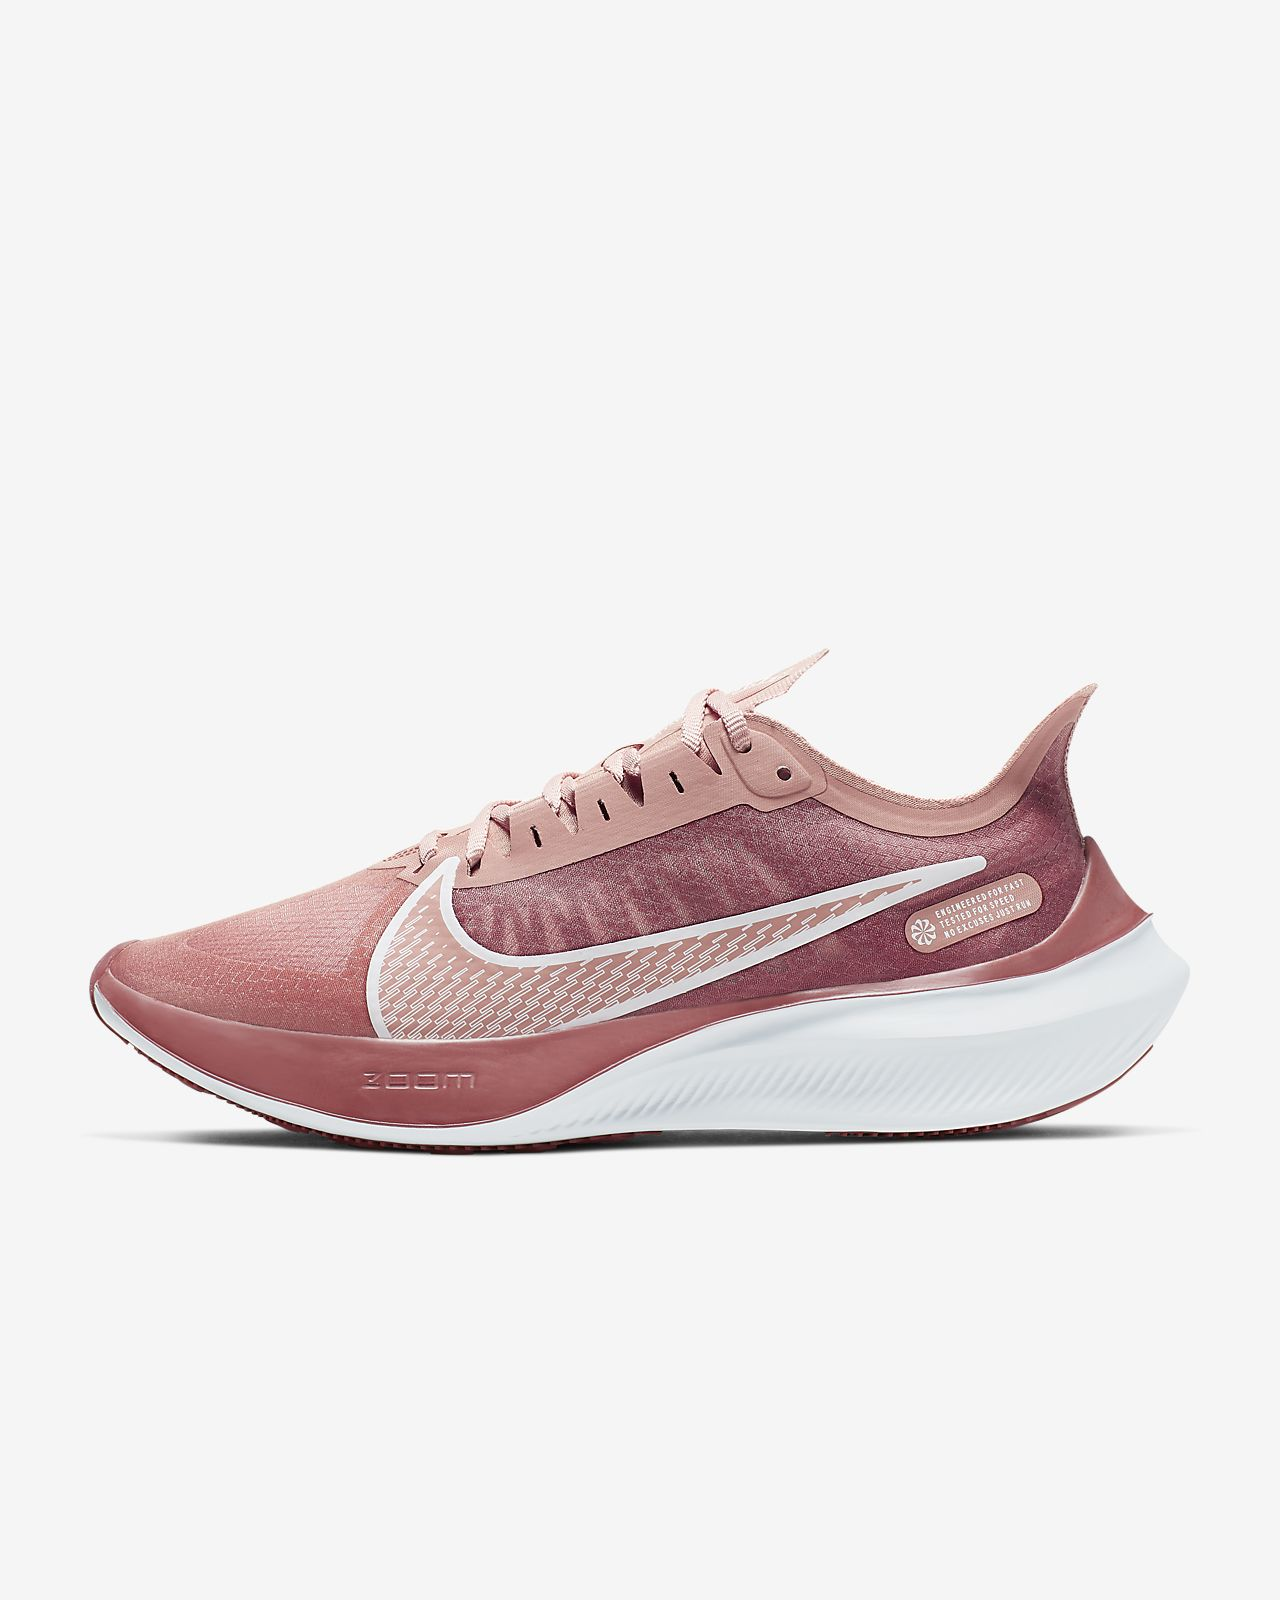 Chaussure de running Nike Zoom Gravity pour Femme